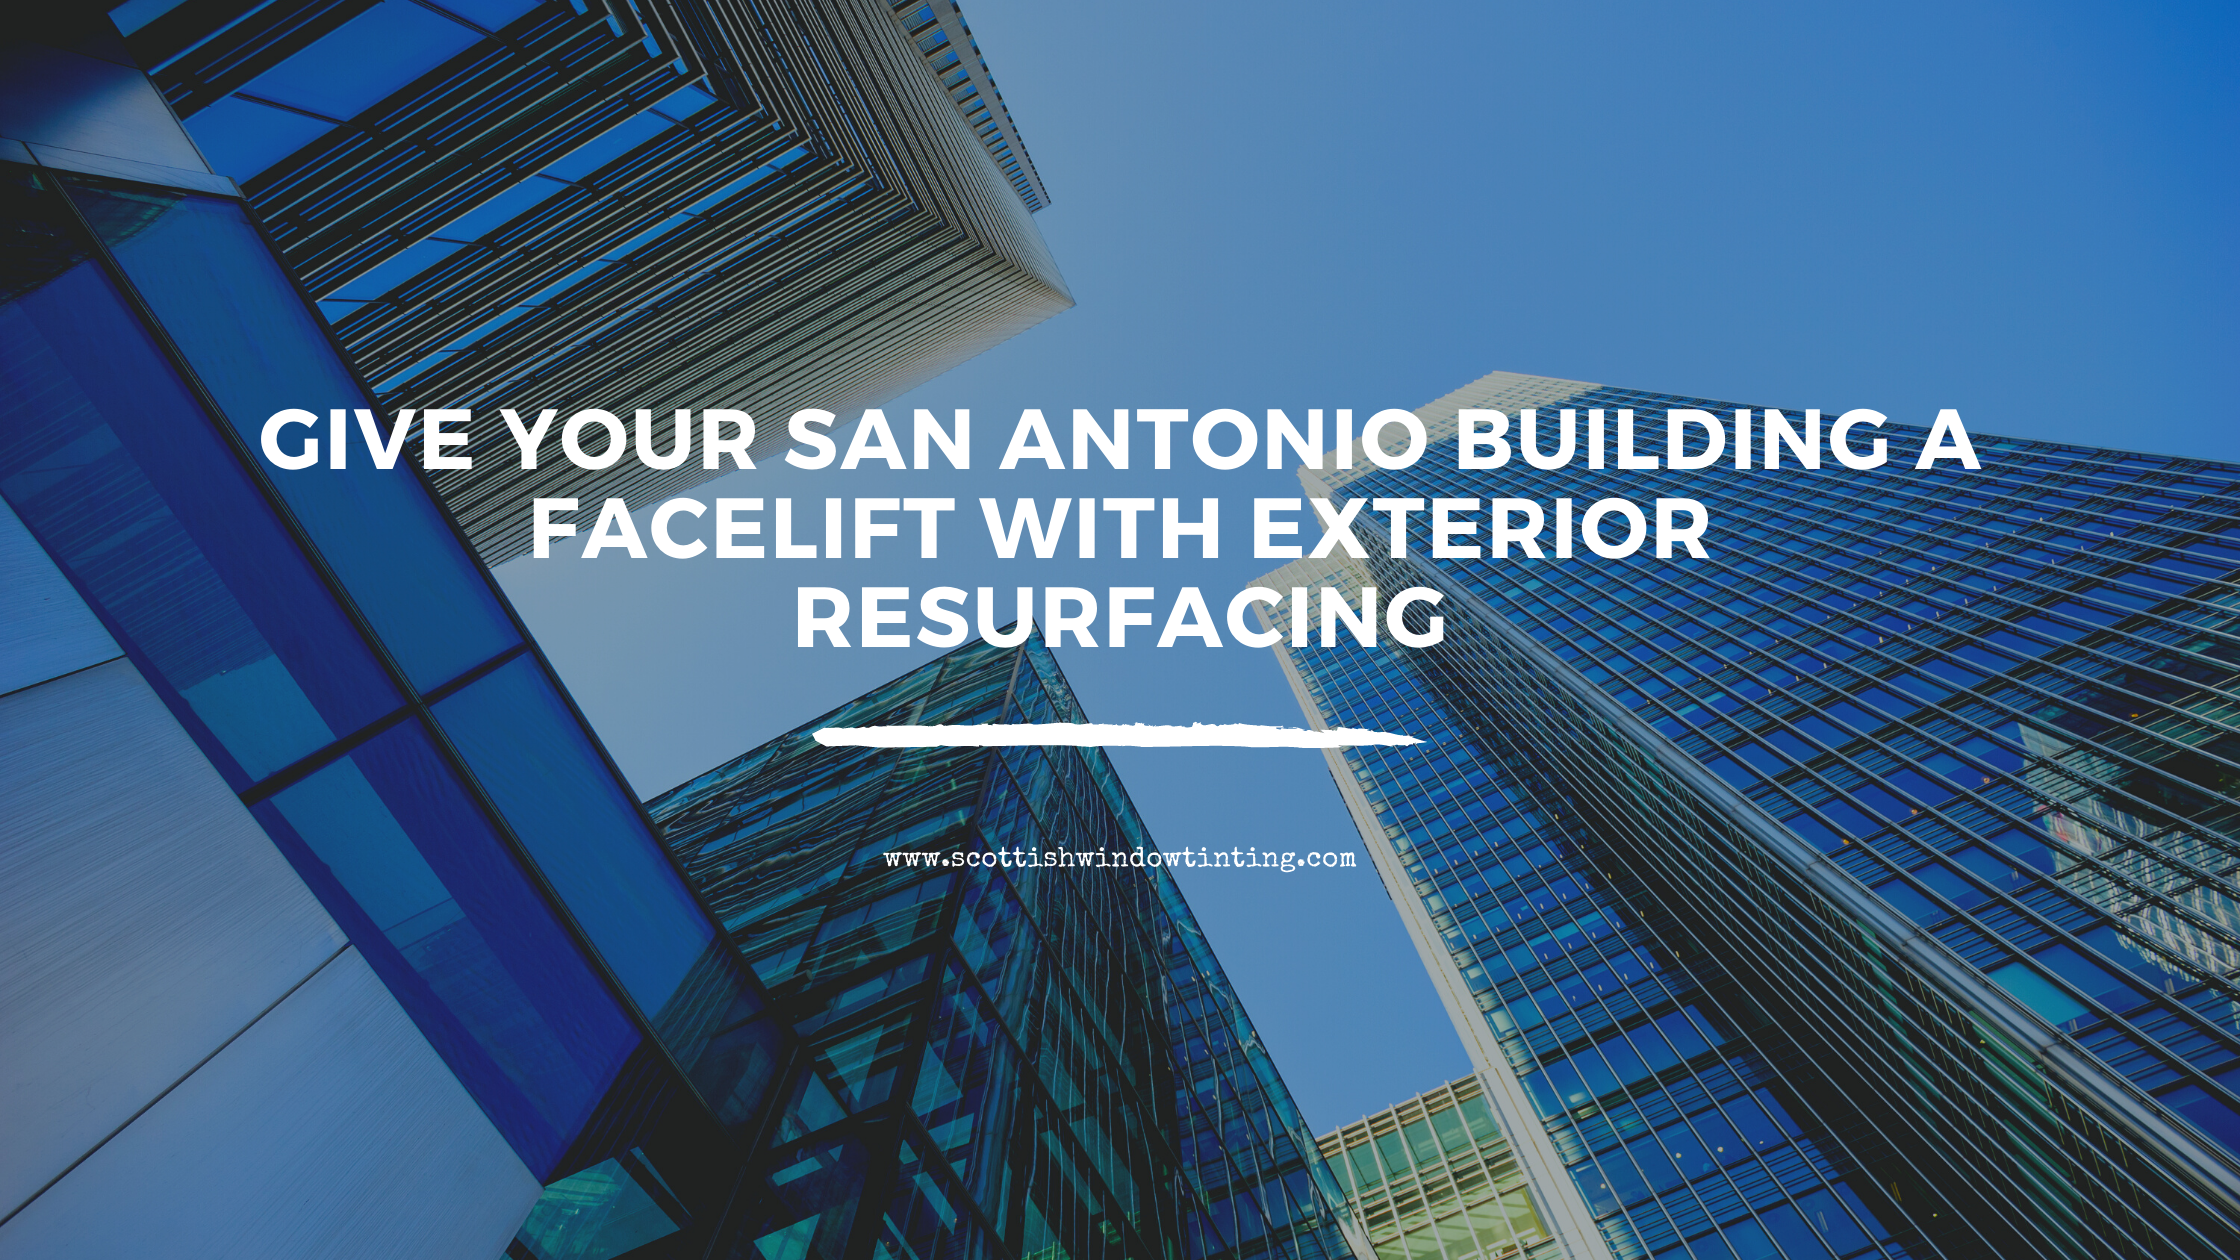 Give Your San Antonio Building a Facelift with Exterior Resurfacing